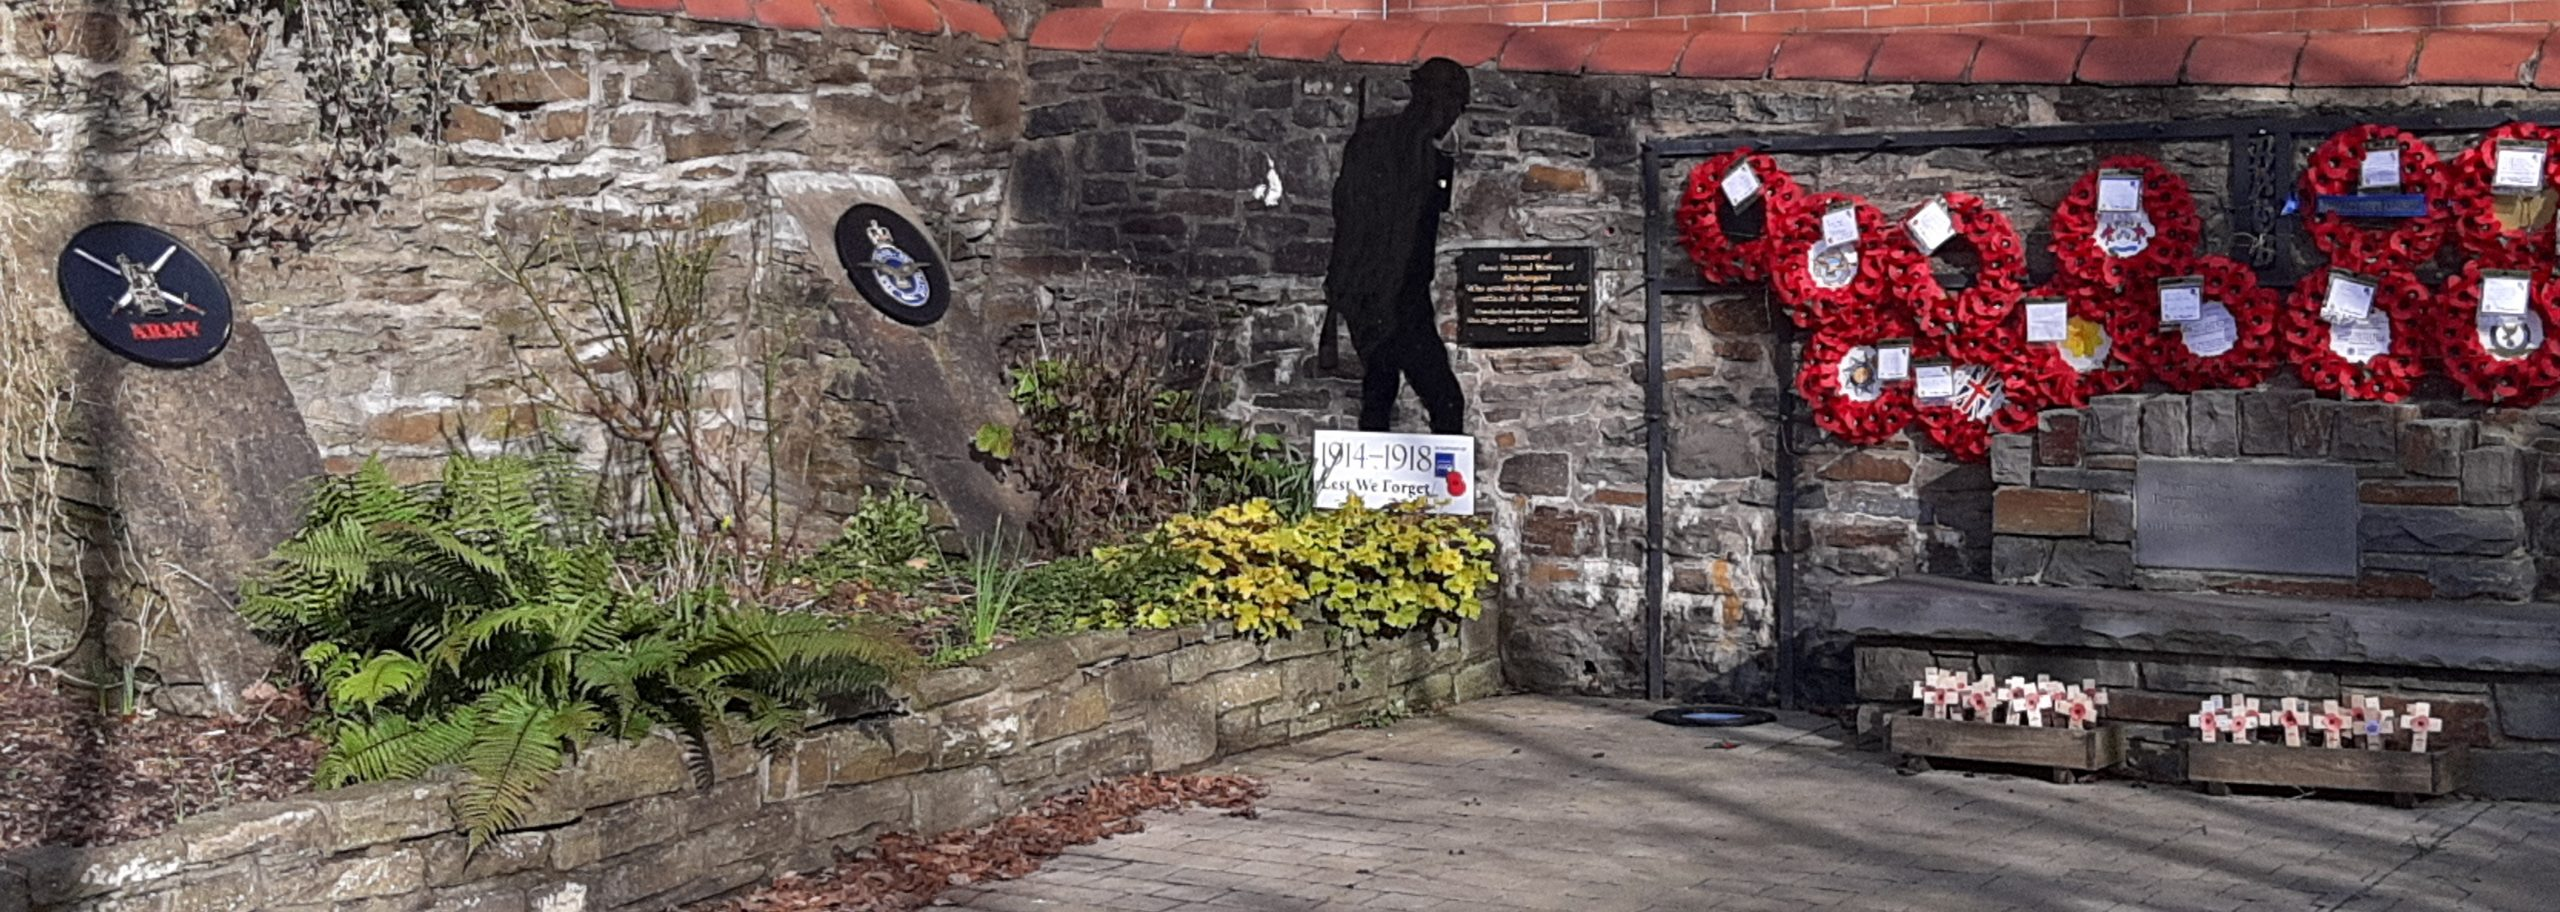 Inside Aberbargoed Memorial Garden